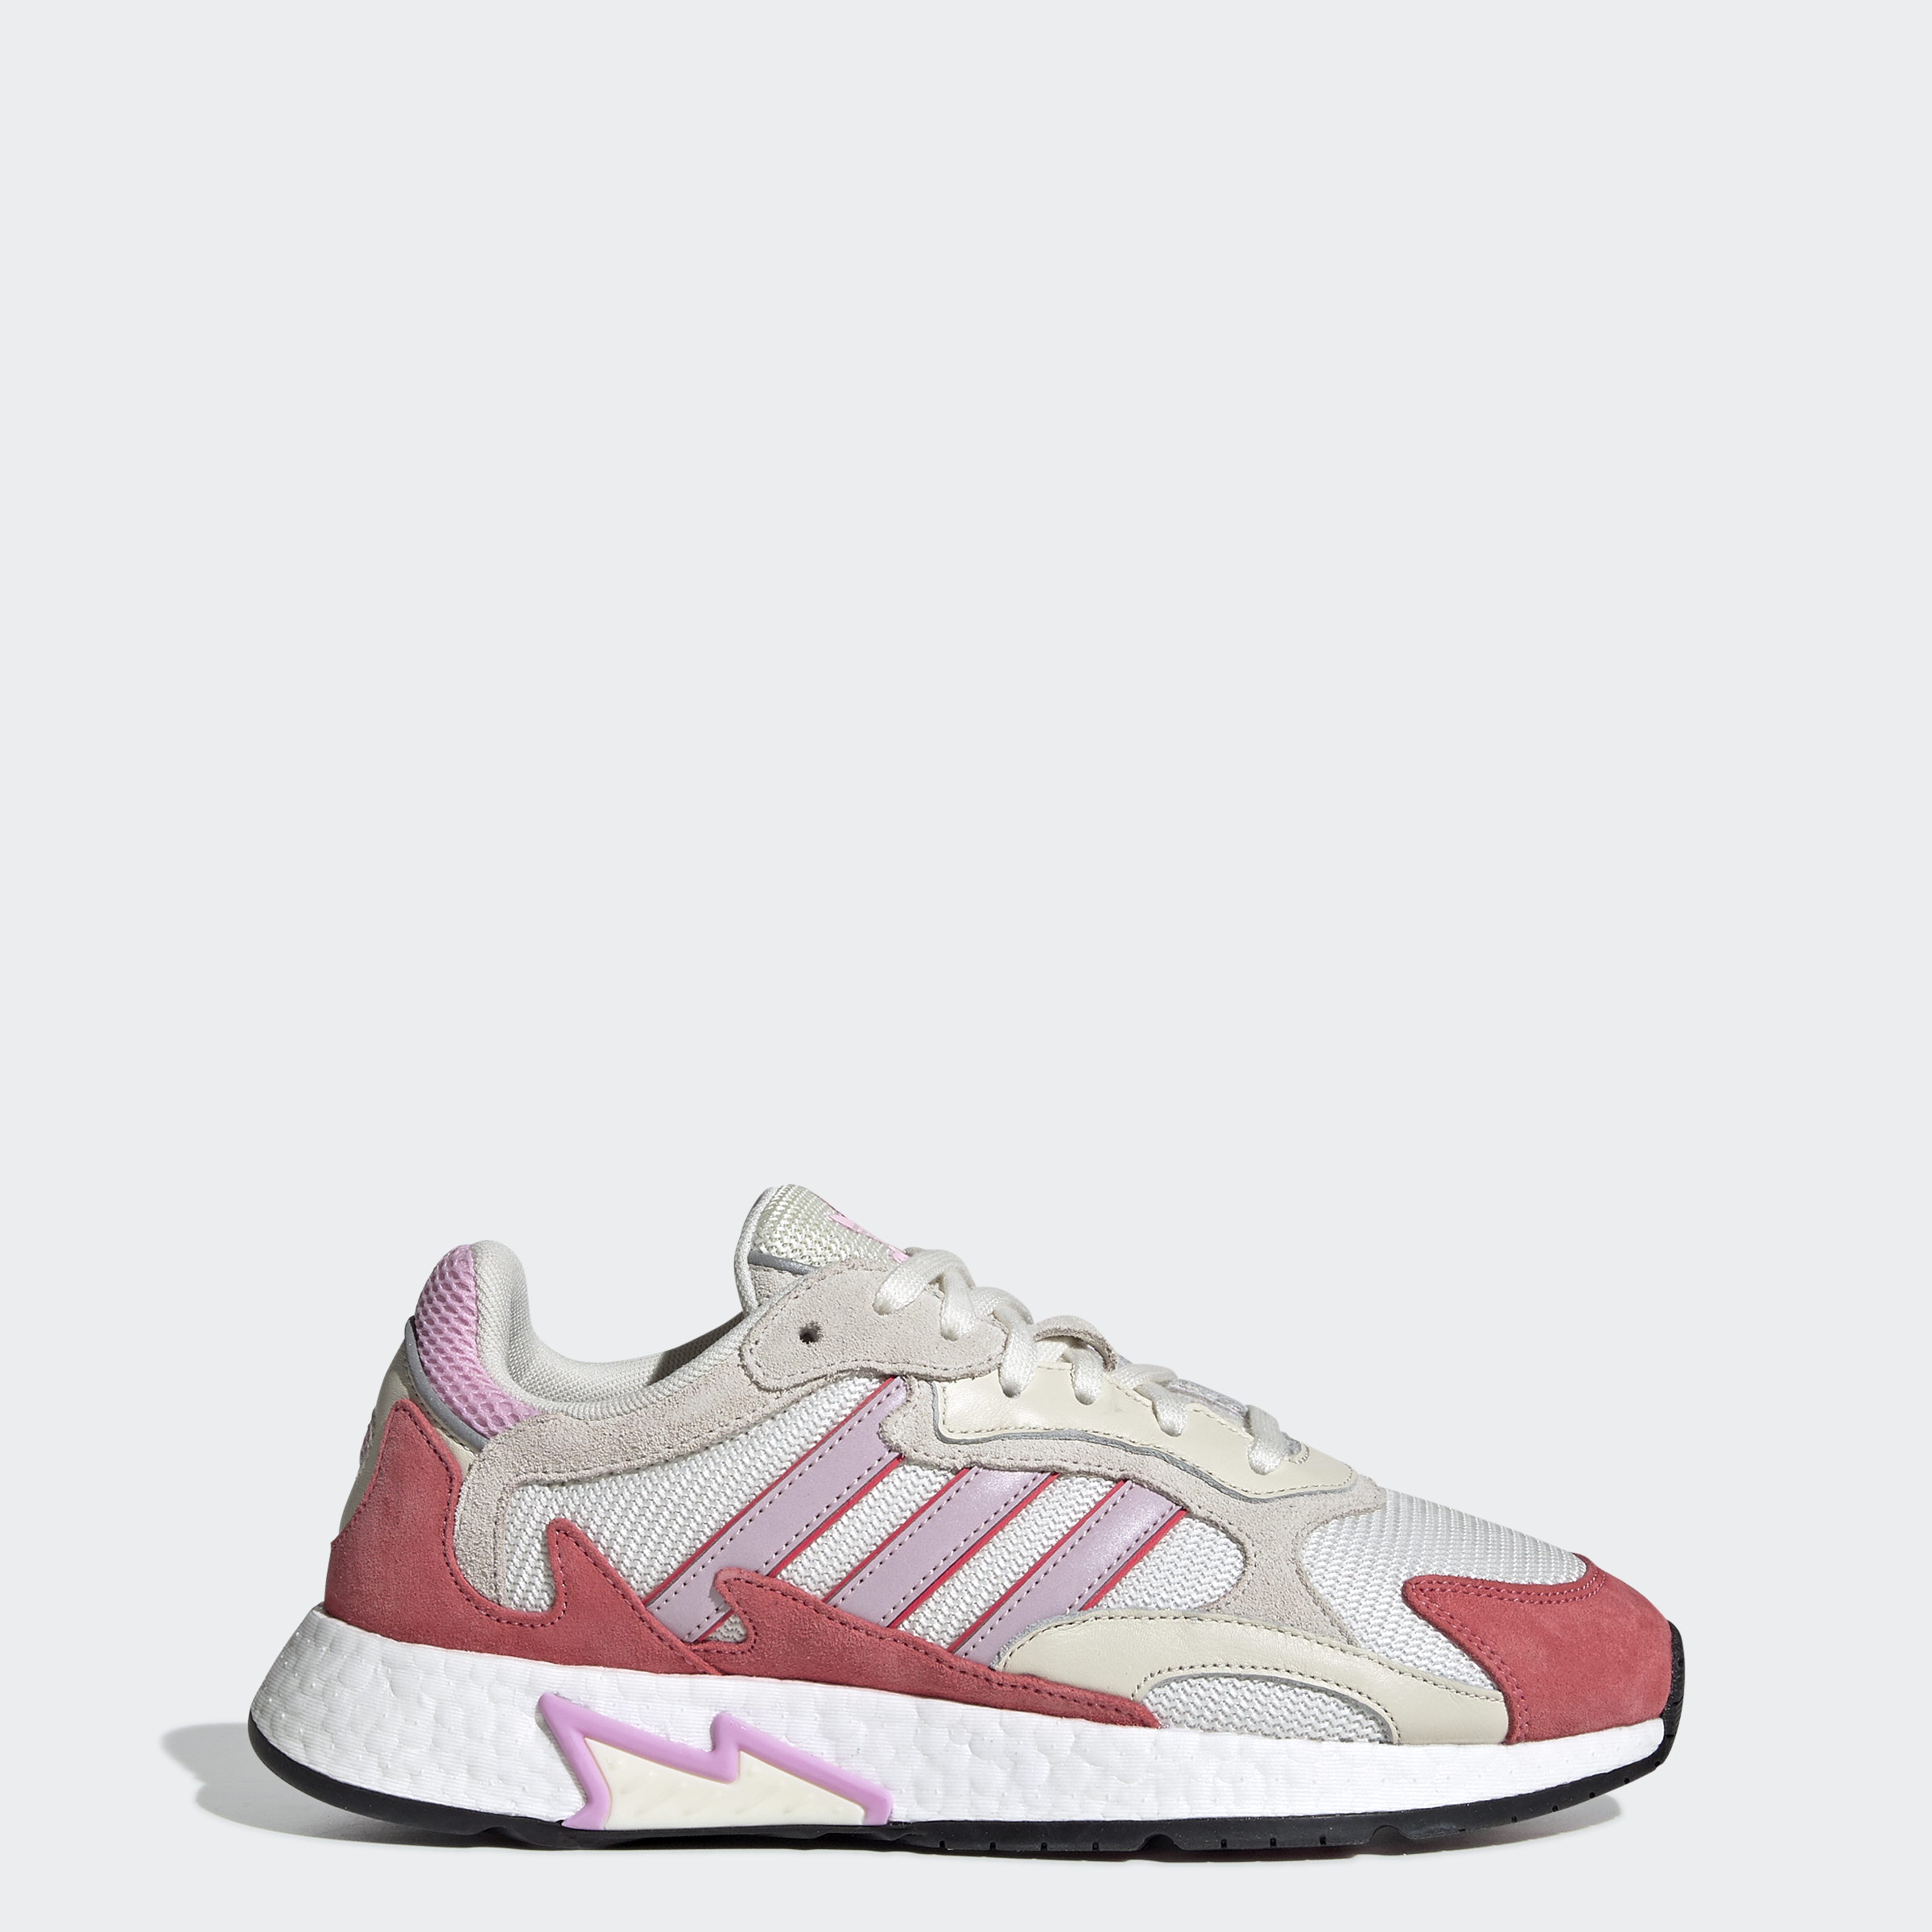 Details about adidas Originals Tresc Run Shoes Women's